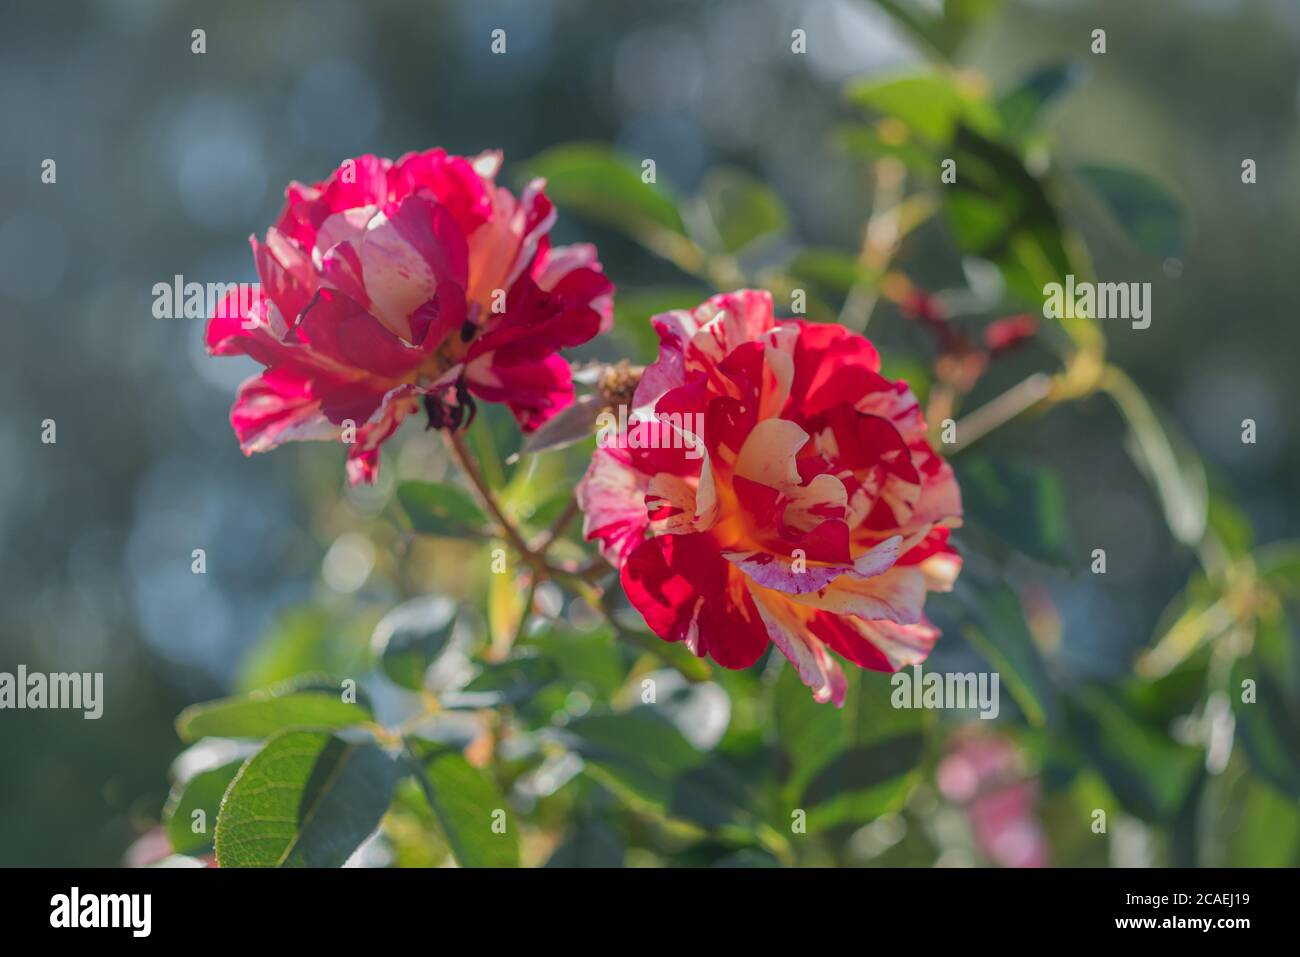 background, beautiful, beauty, bicolor, bicolor flower, bicolored, bloom, blooming, blossom, botanical, botany, branch, bright, bud, buds, bush, close Stock Photo